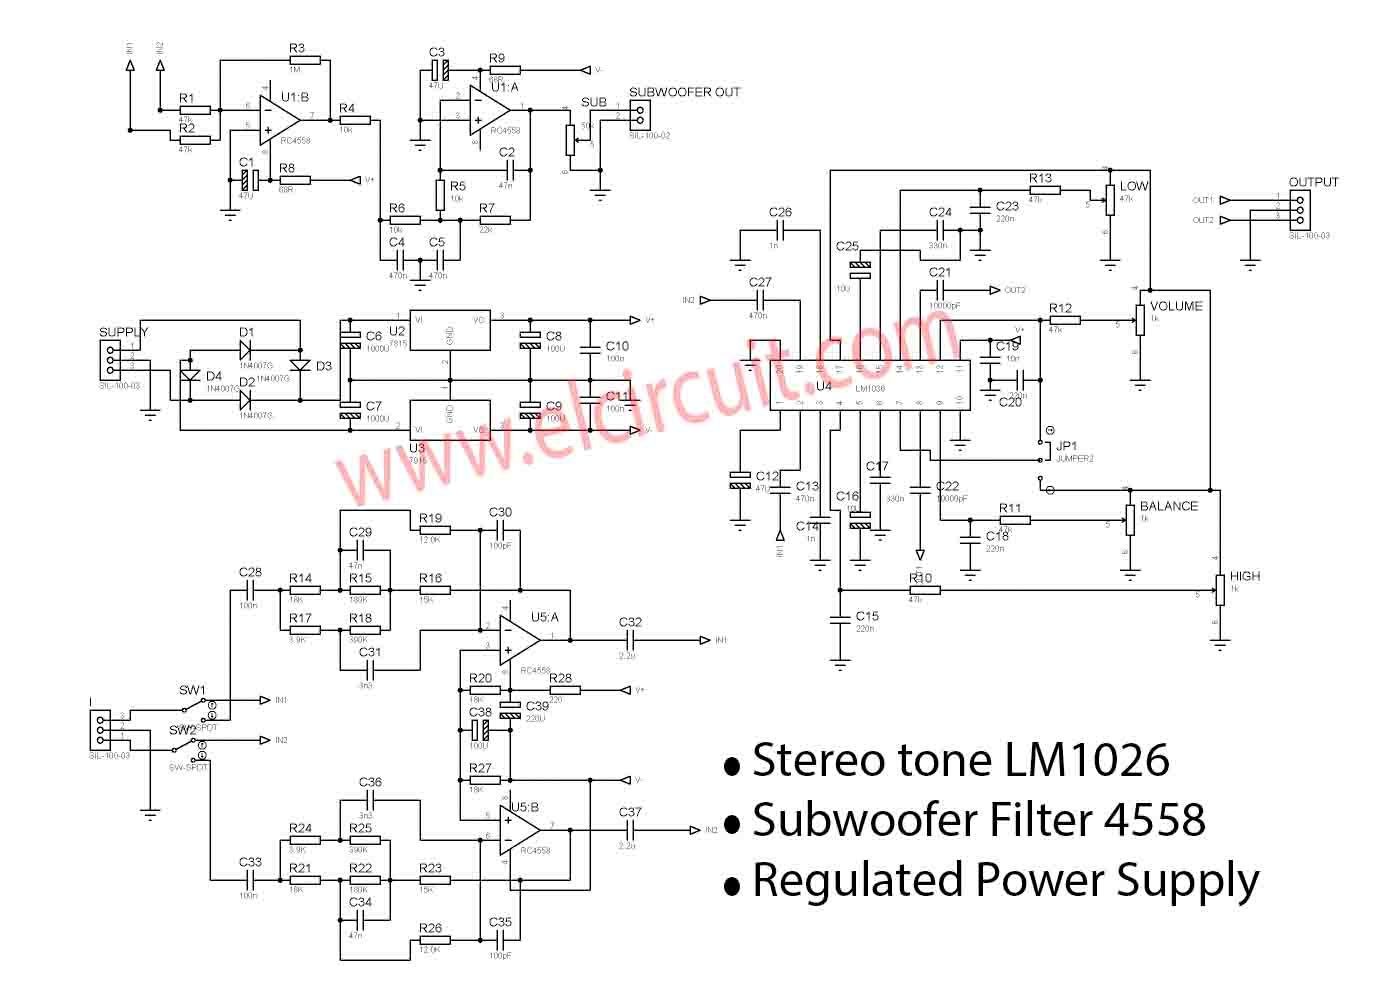 Stereo Tone Control Circuit Using Ic Op Amp Tl084 T Radio Fm Receiver Diagram Tea5710 Electronic Design 21 Hifi Preamplifier Lm1036 Subwoofer Filter 4558 In The Above Scheme For Its